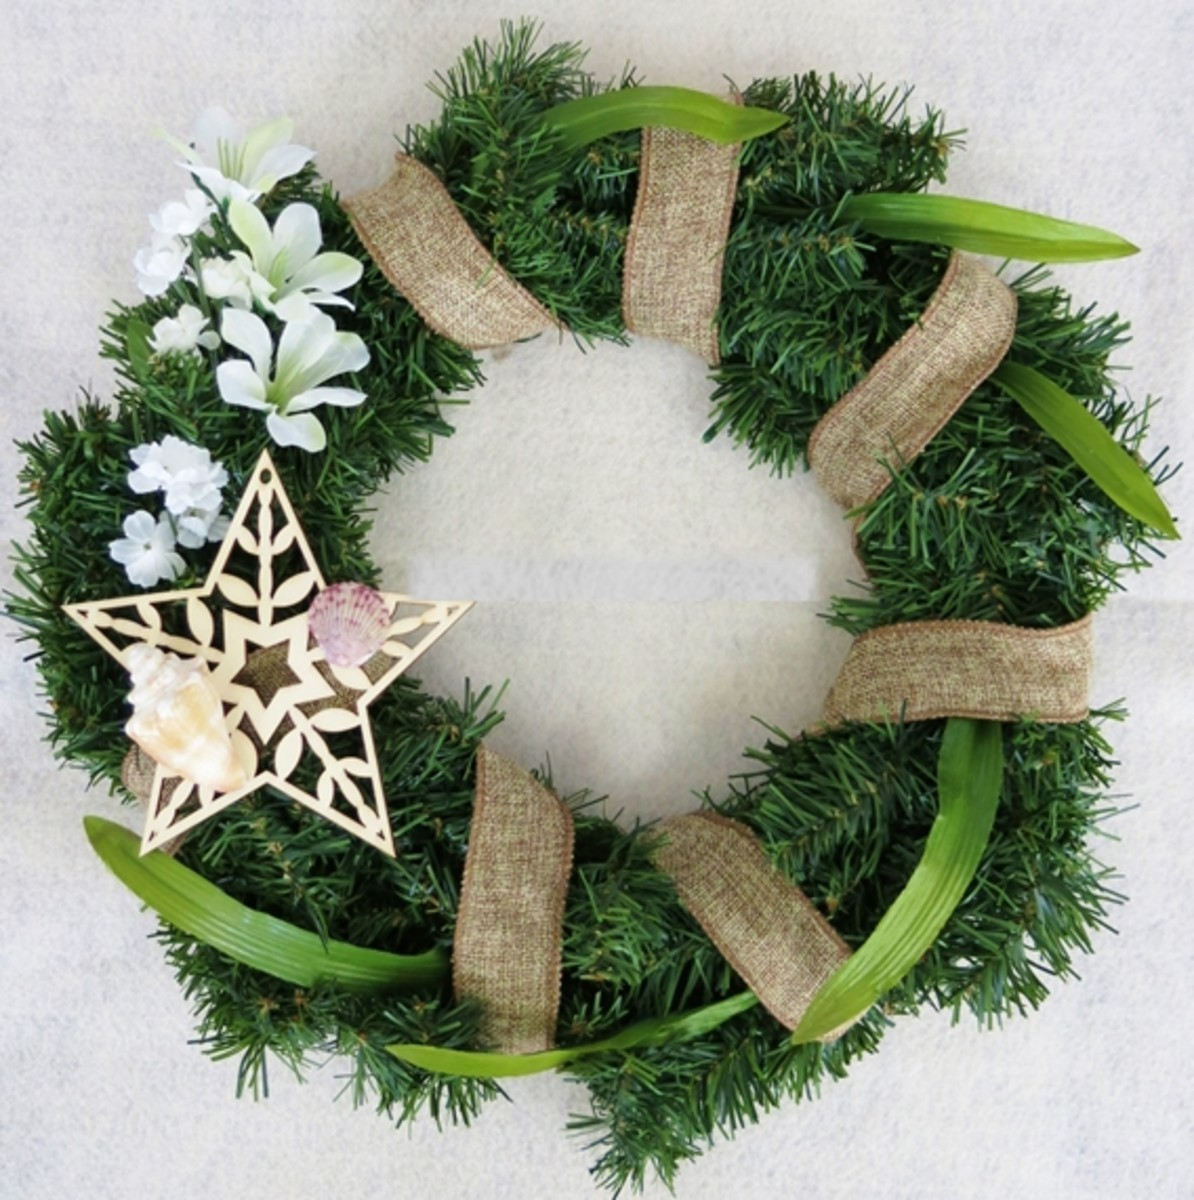 You can redecorate your Christmas wreaths with other materials to use all year long.